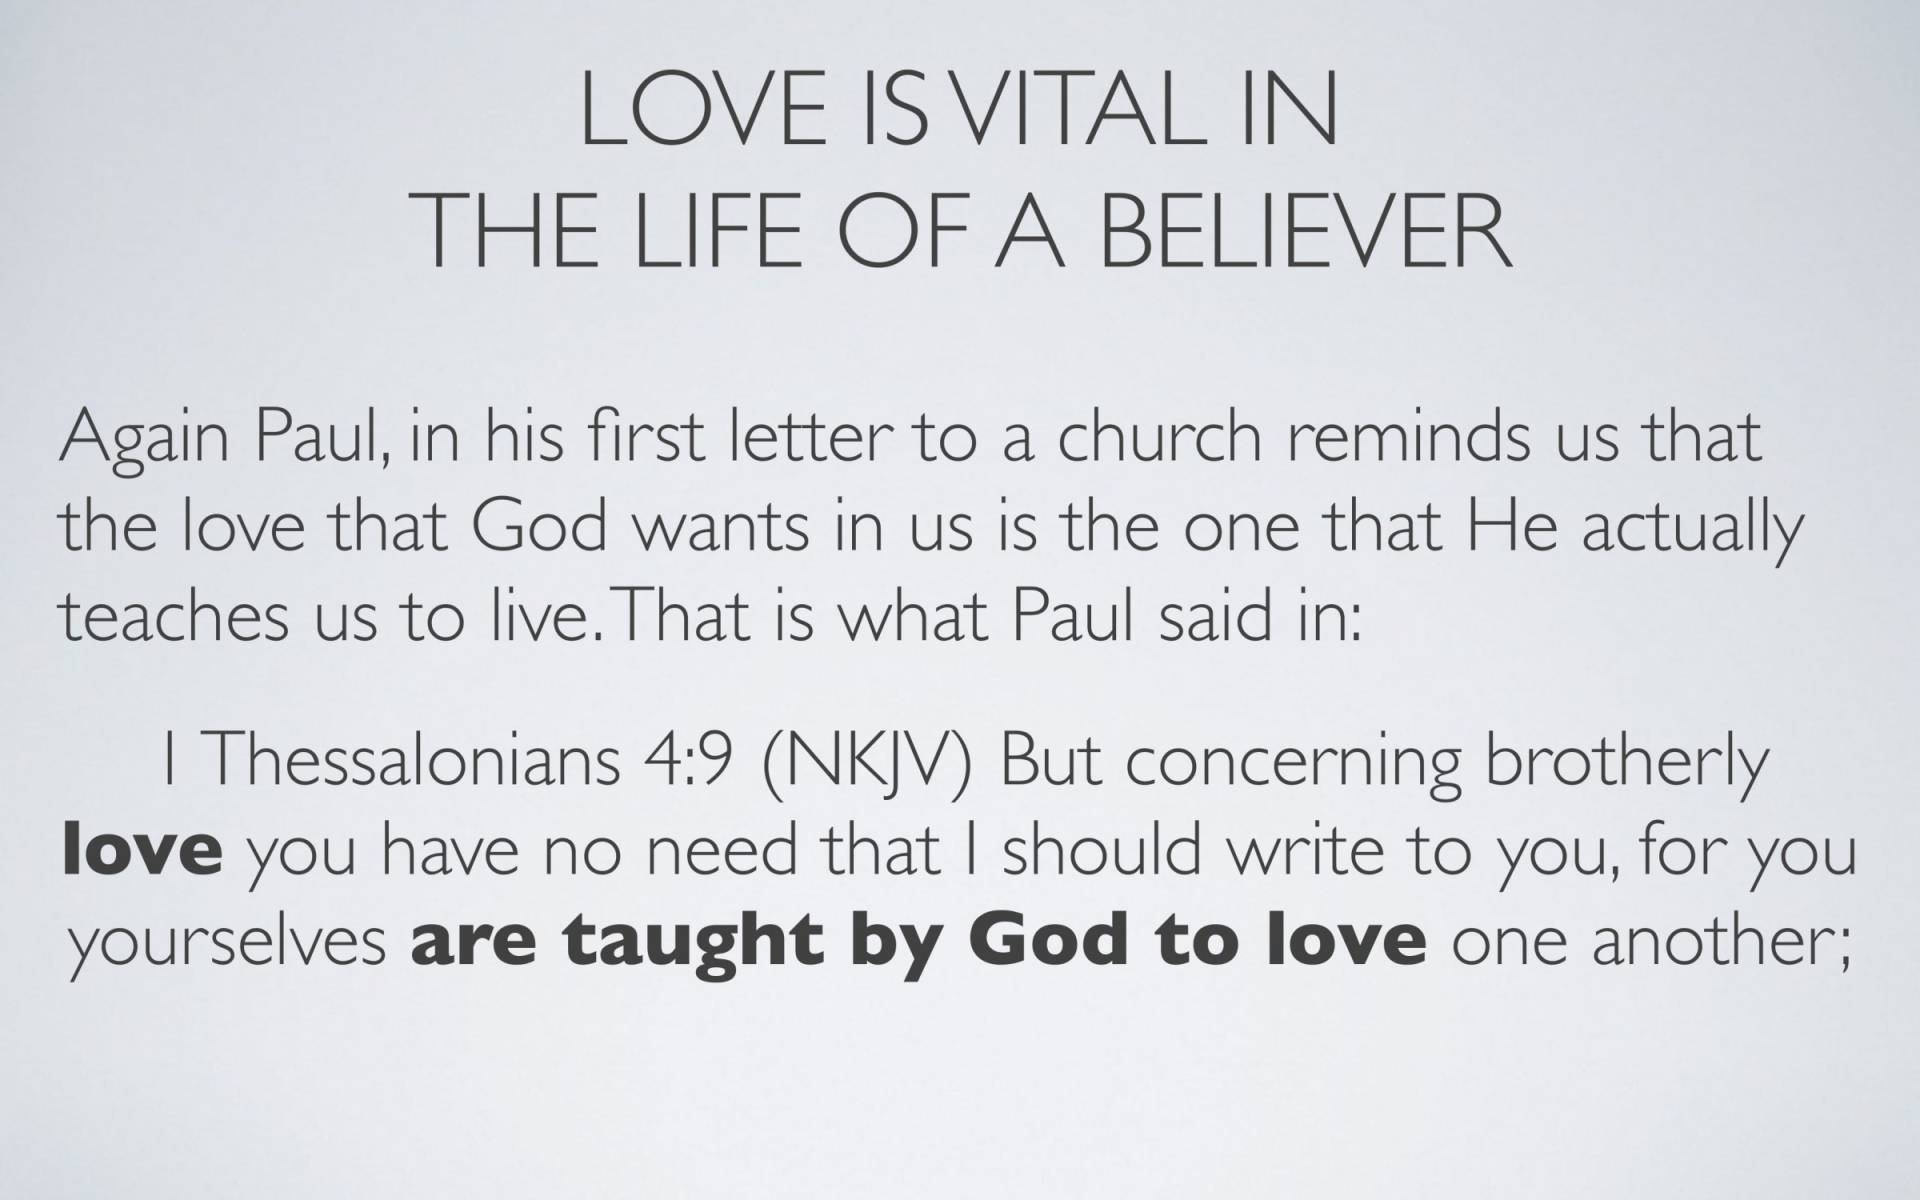 BC&D-34 - Lesson 13-2 - The Source Of The River Of Love That Is To Flow Out Of The Life Of A Believer-09